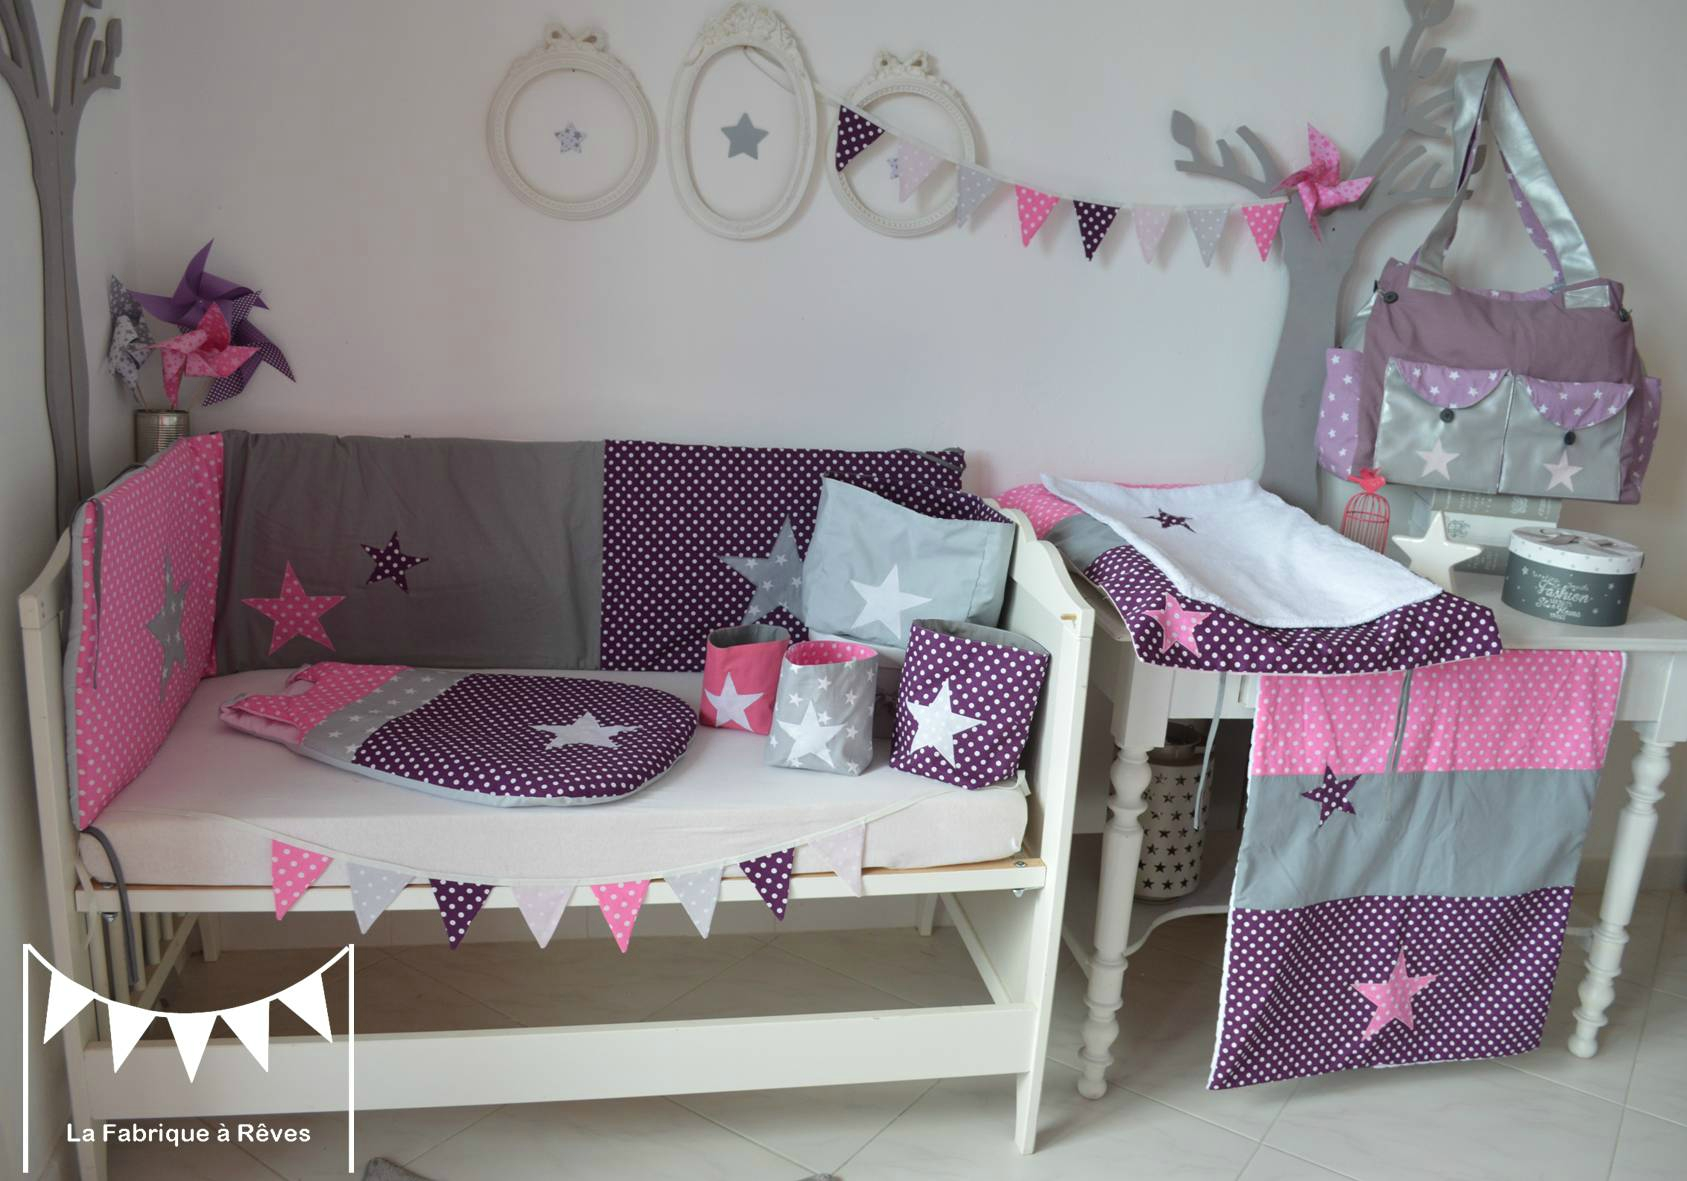 D coration chambre b b fille blanc violet rose vif gris for Deco chambre bebe fille rose